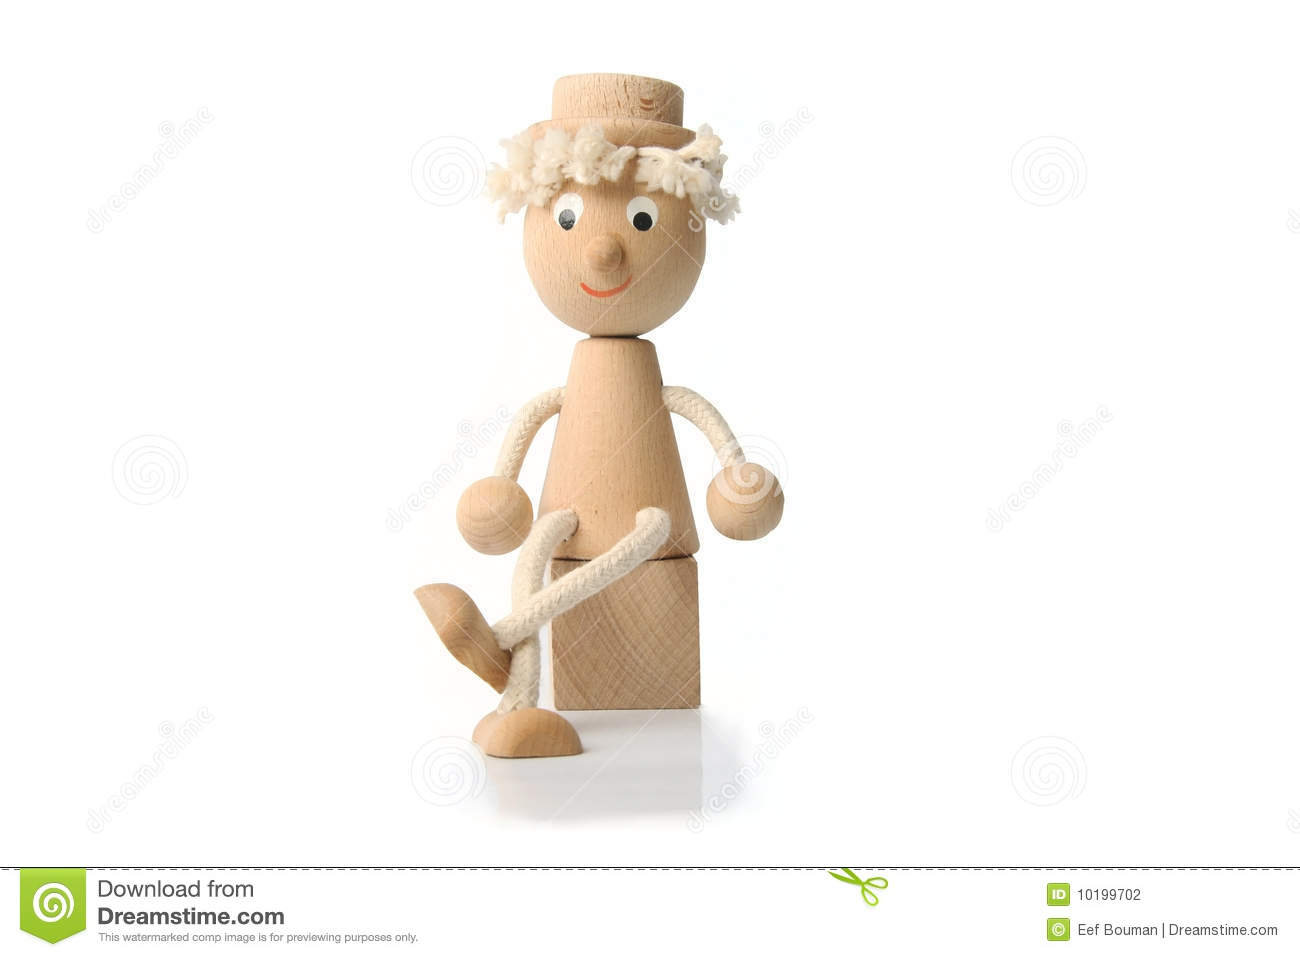 Wooden Toy Figure Stock Photography - Image: 10199702